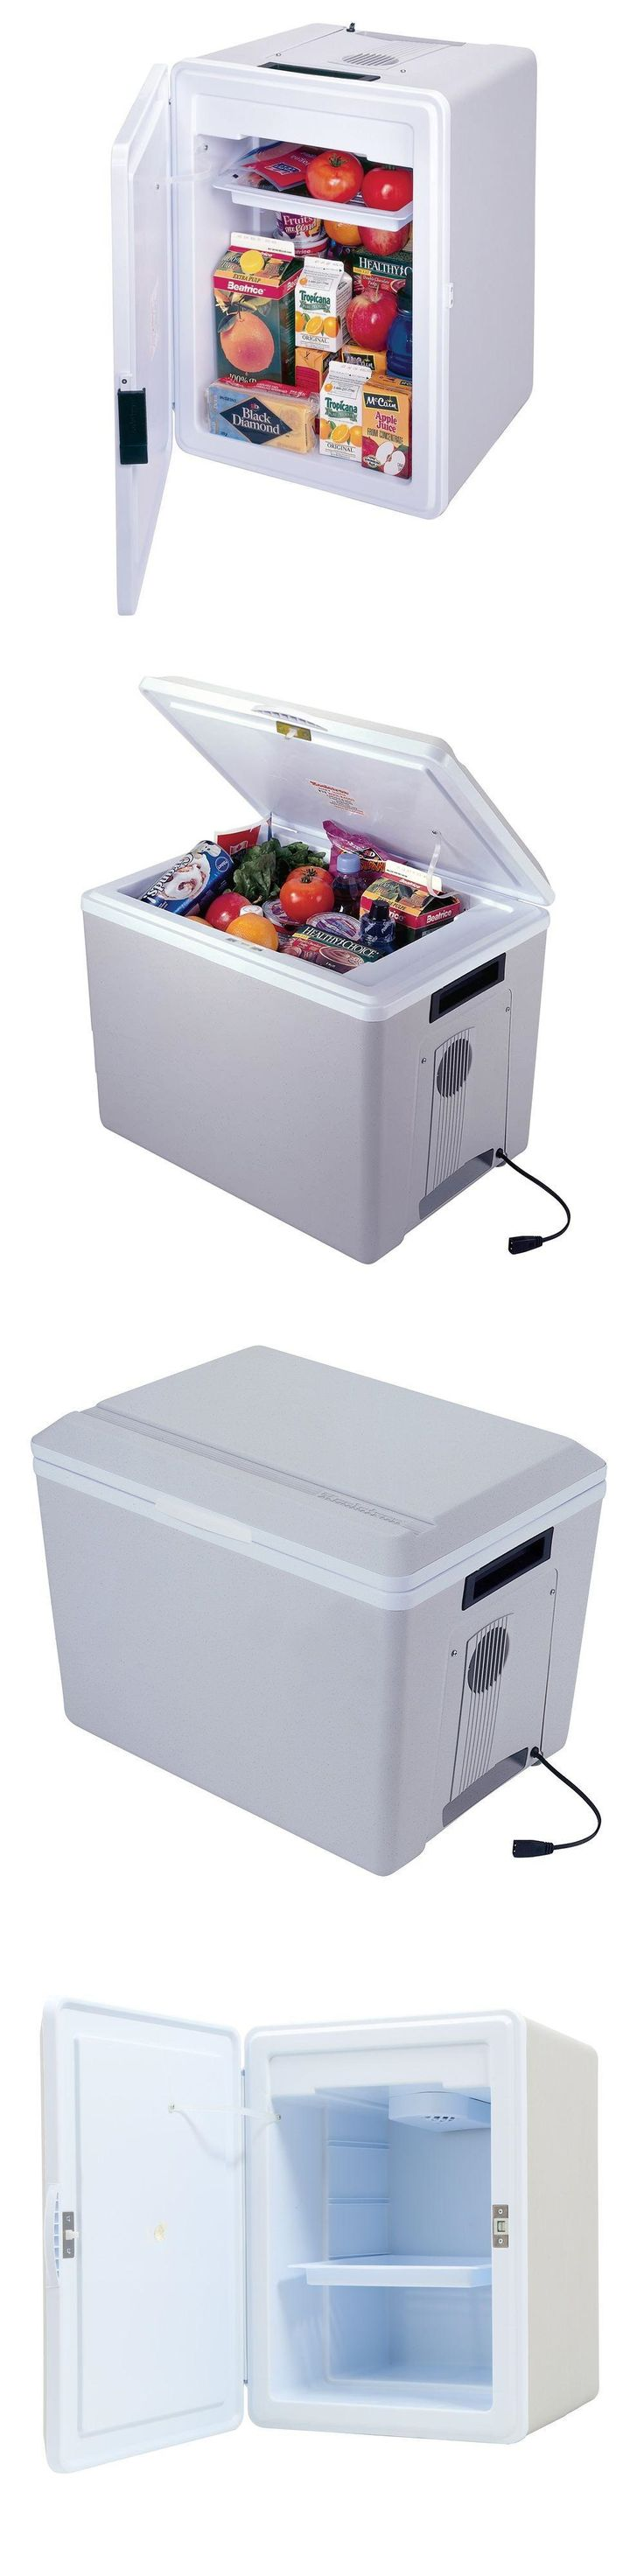 12-Volt Portable Appliances: Portable Mini Fridge For Car Travel Cooler And Warmer Electric Camping Food Bbq BUY IT NOW ONLY: $165.99